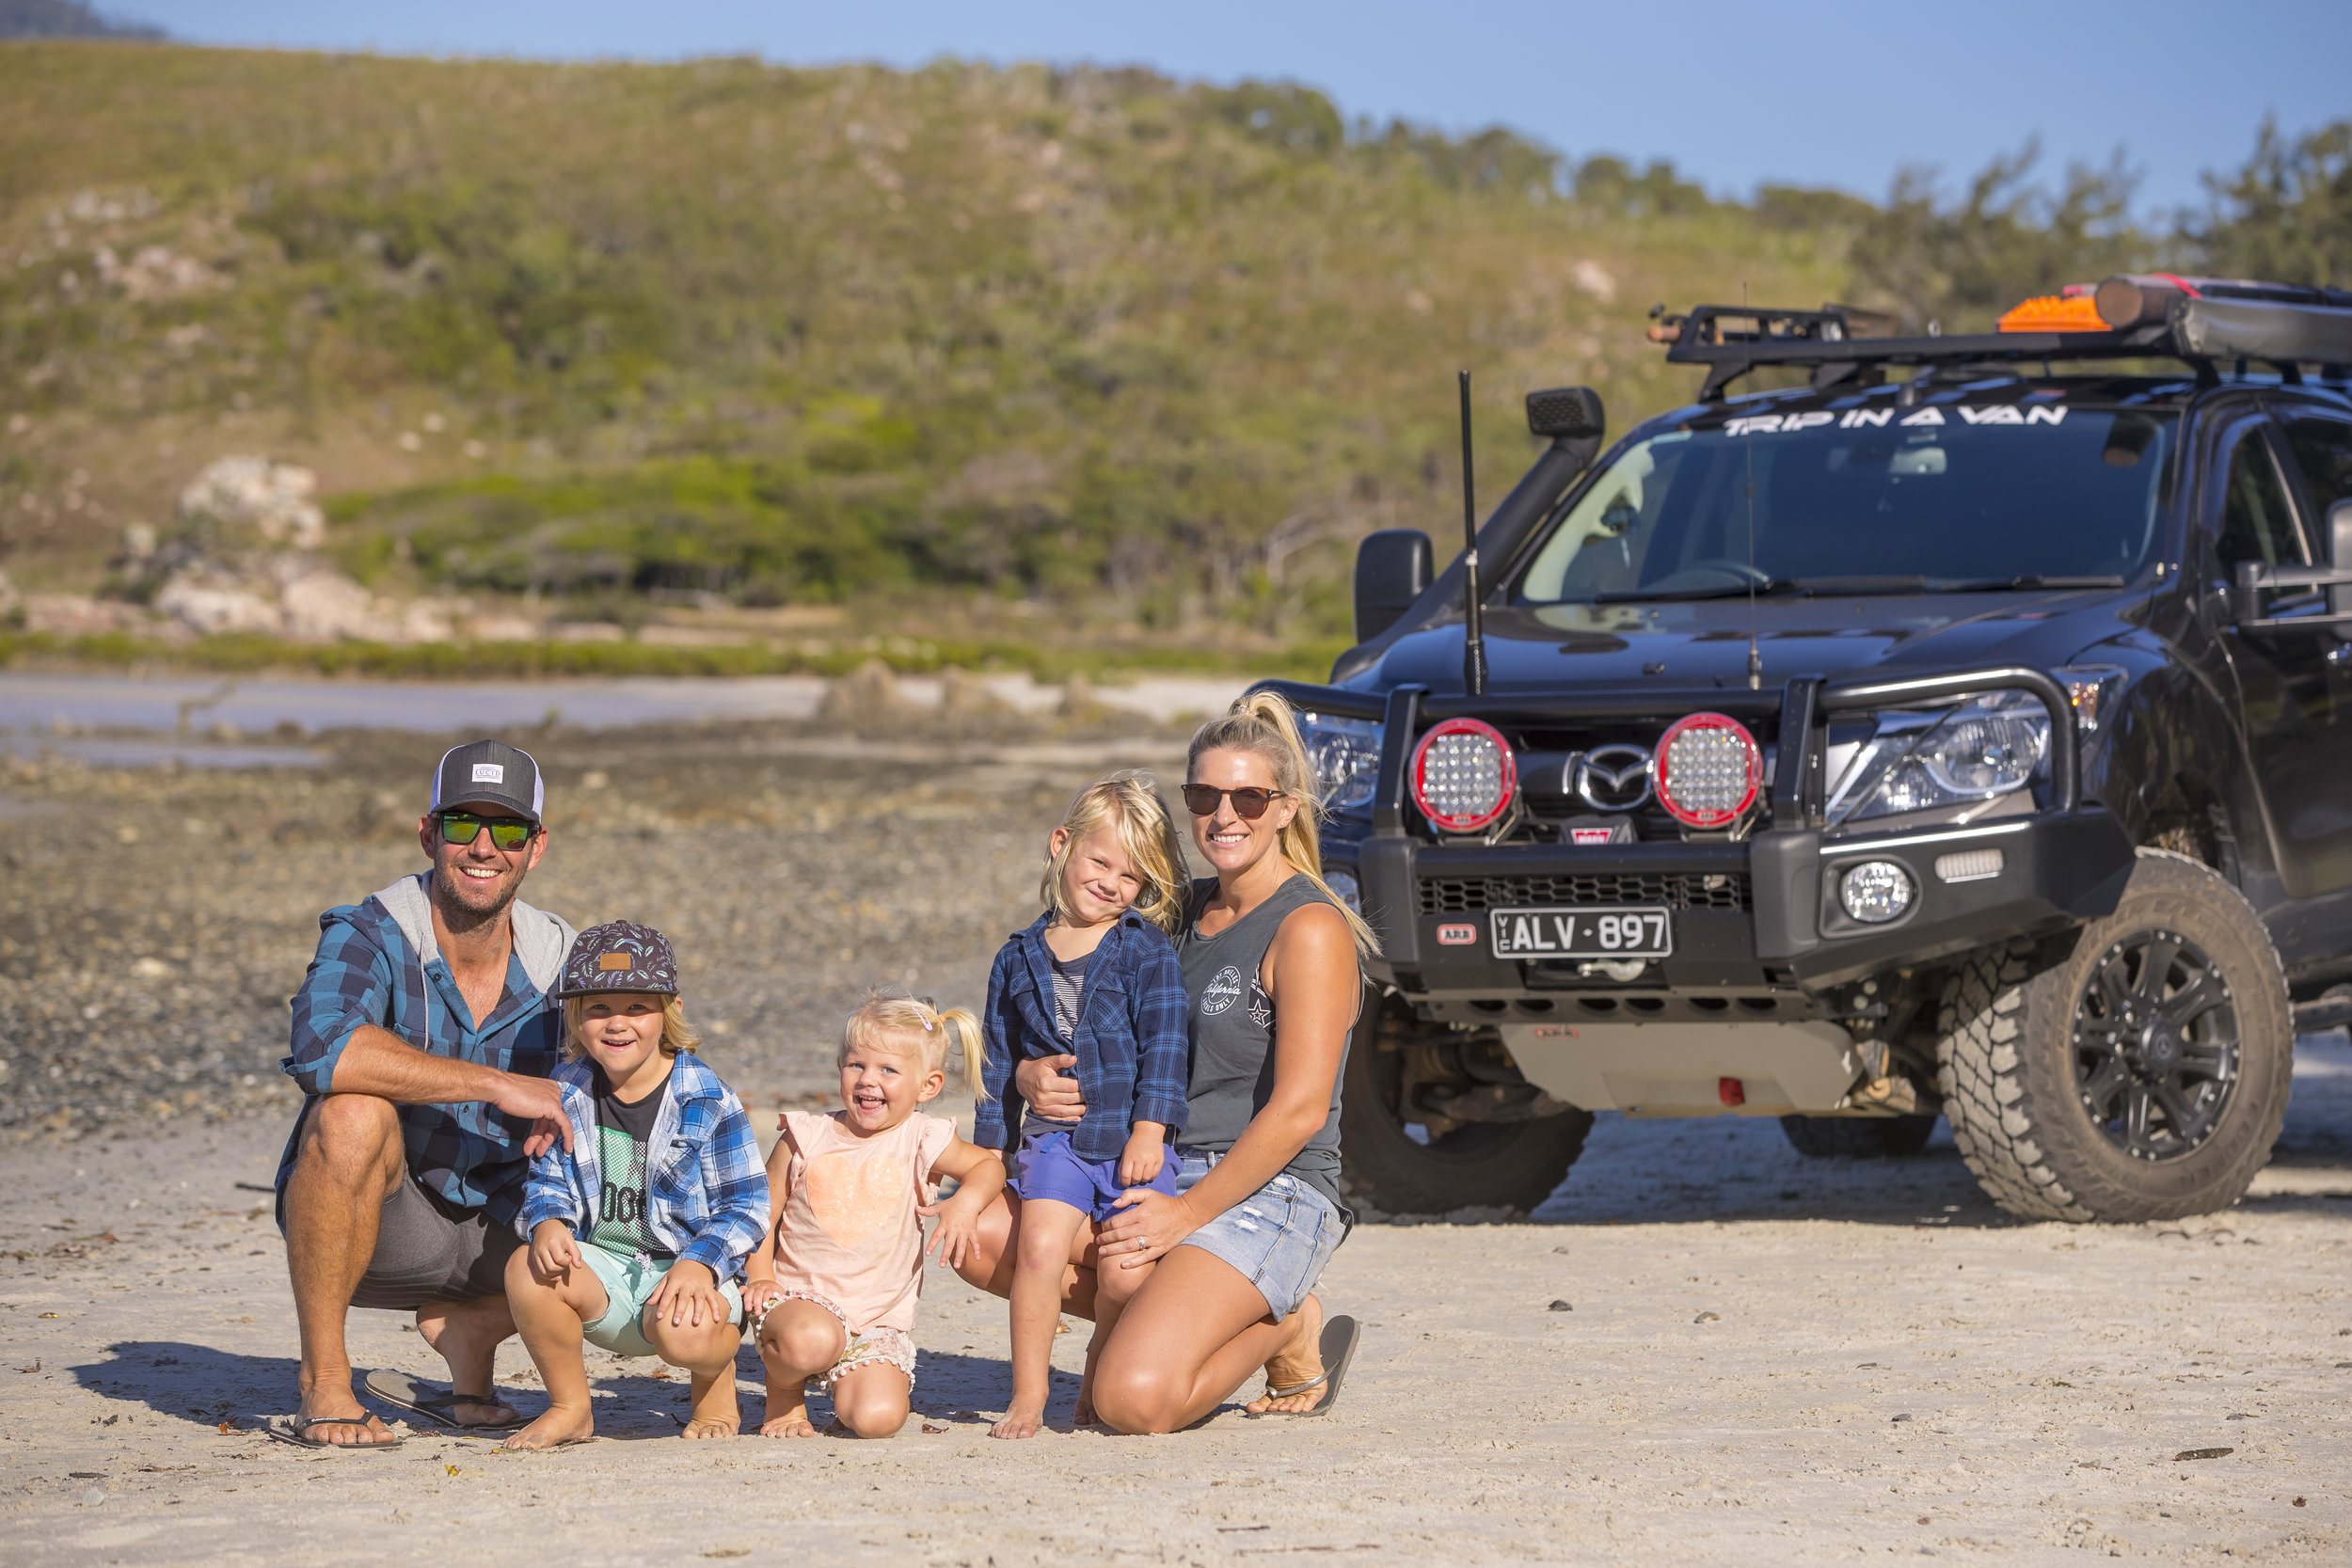 IMAGE CRED -https://www.offroadimages.com.au